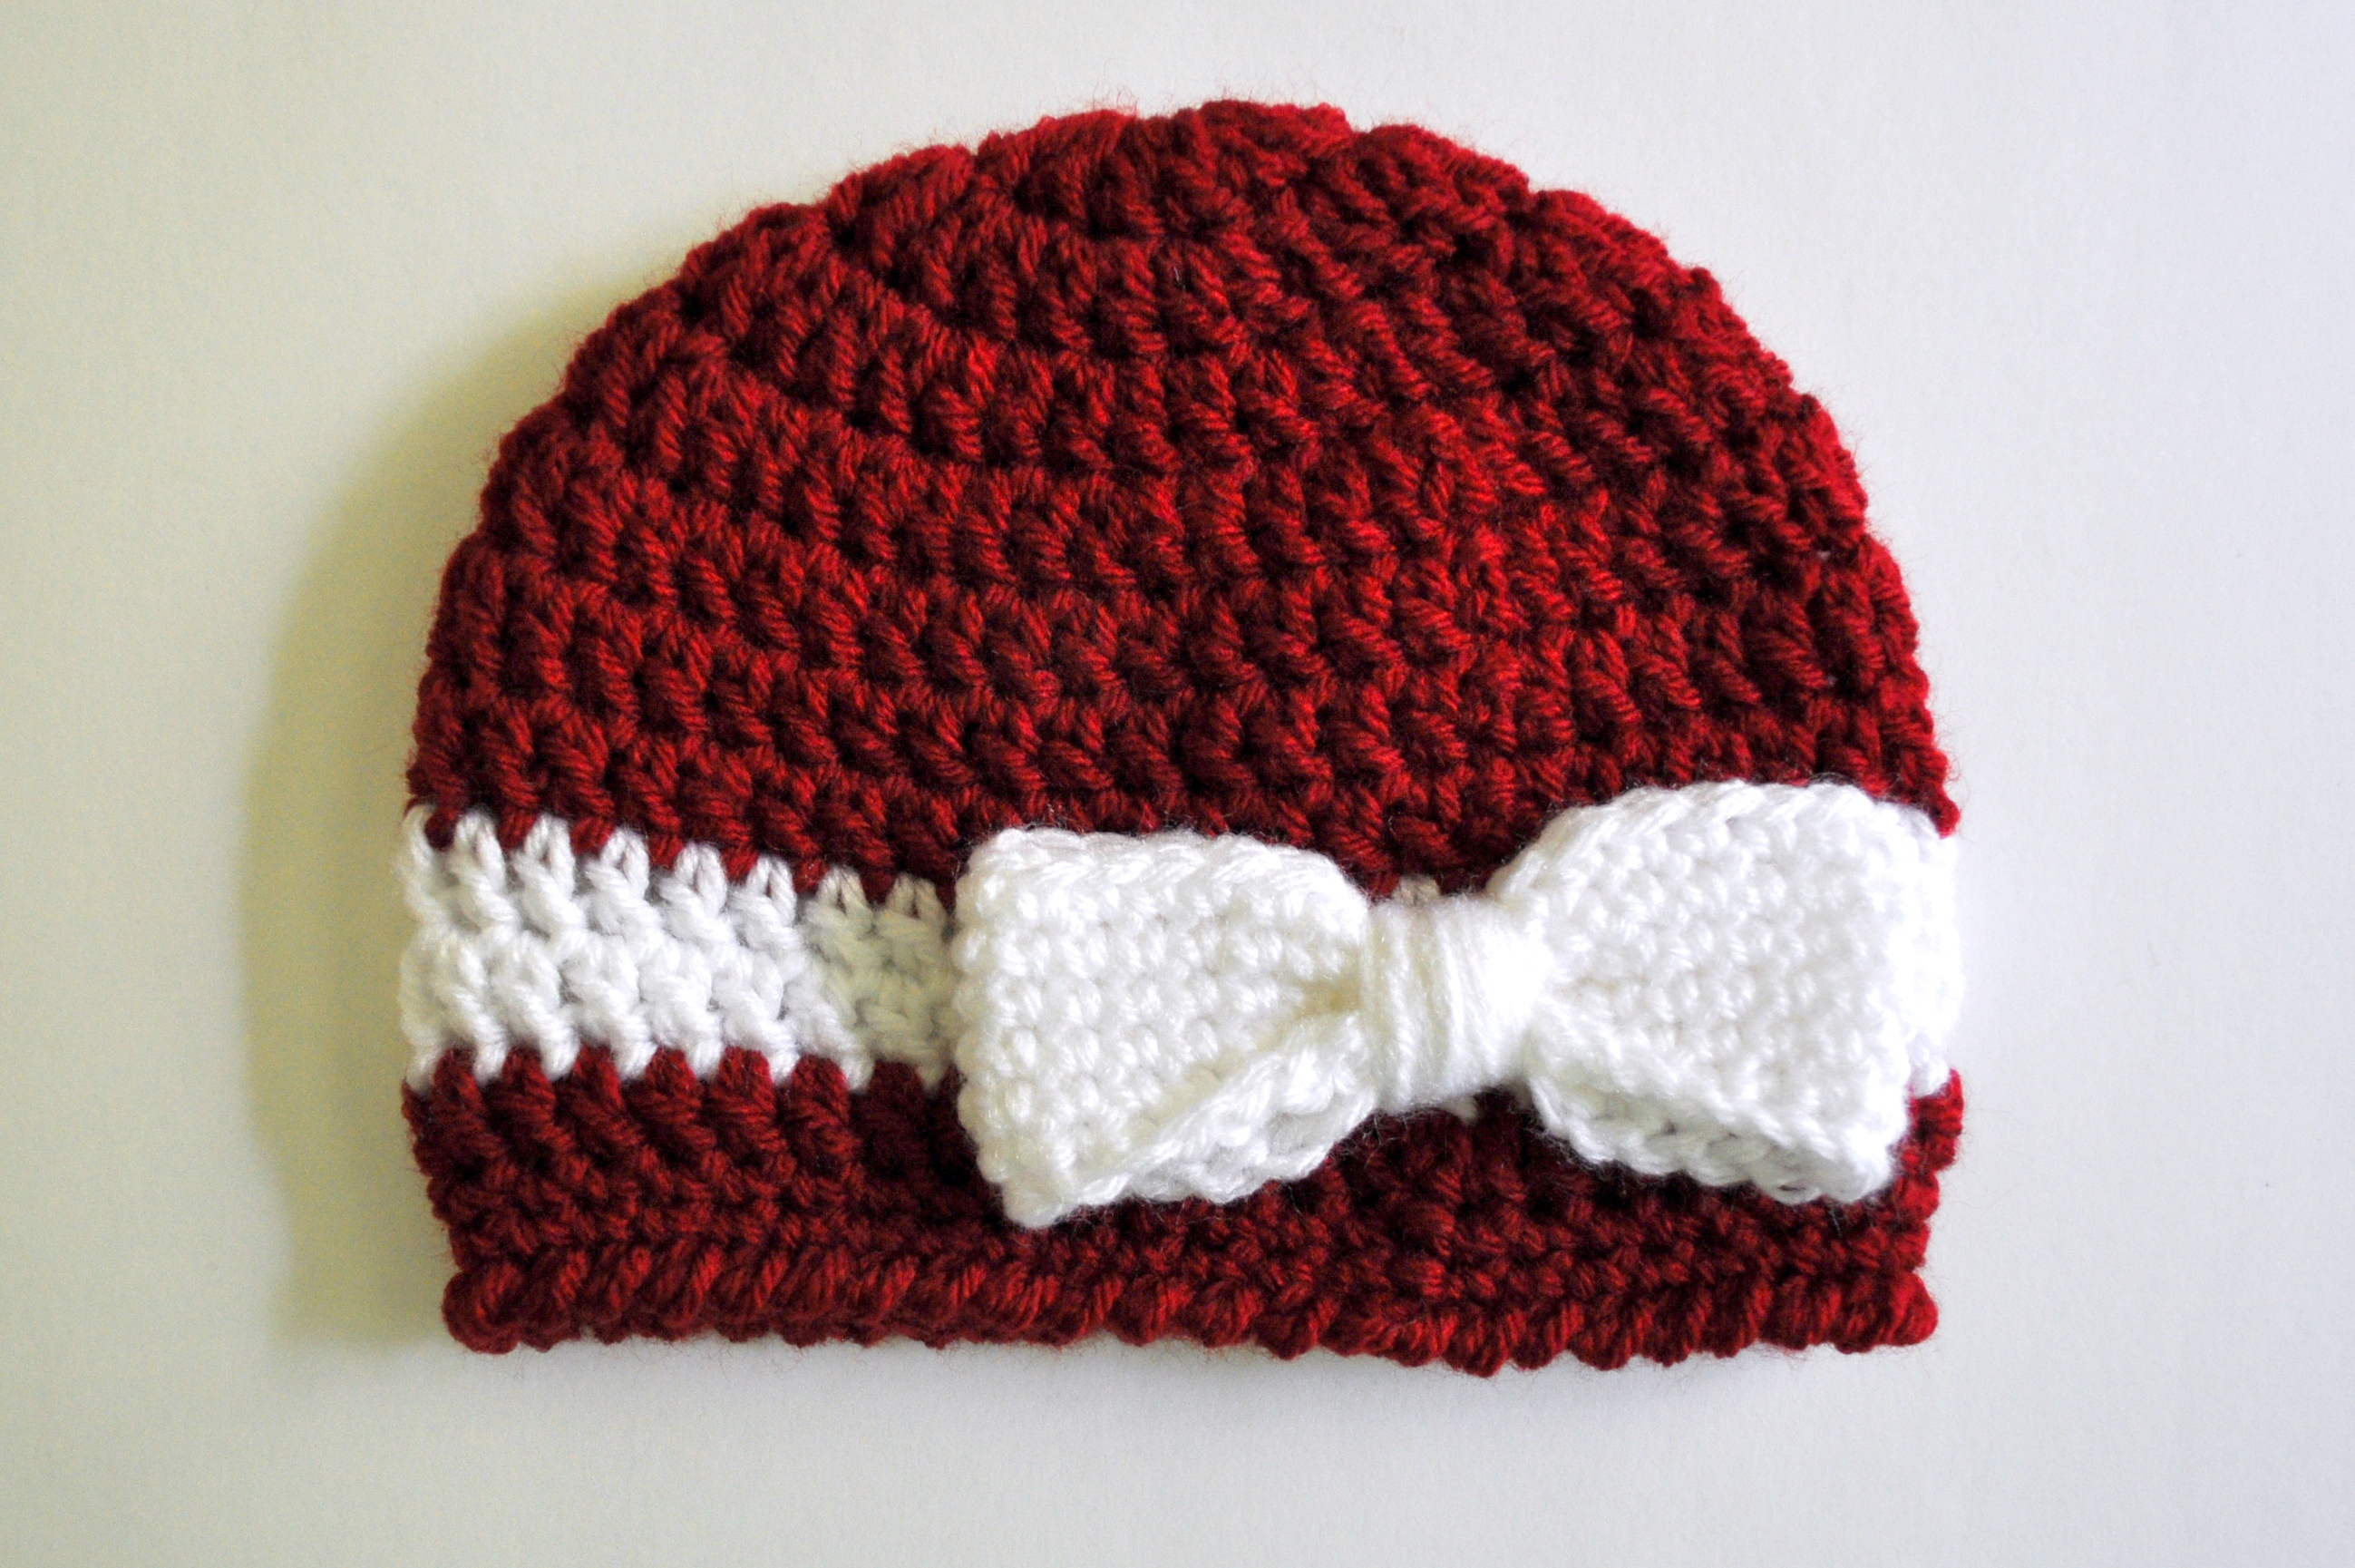 Crochet Patterns Hats : 25 Easy Crochet Bow Patterns Guide Patterns